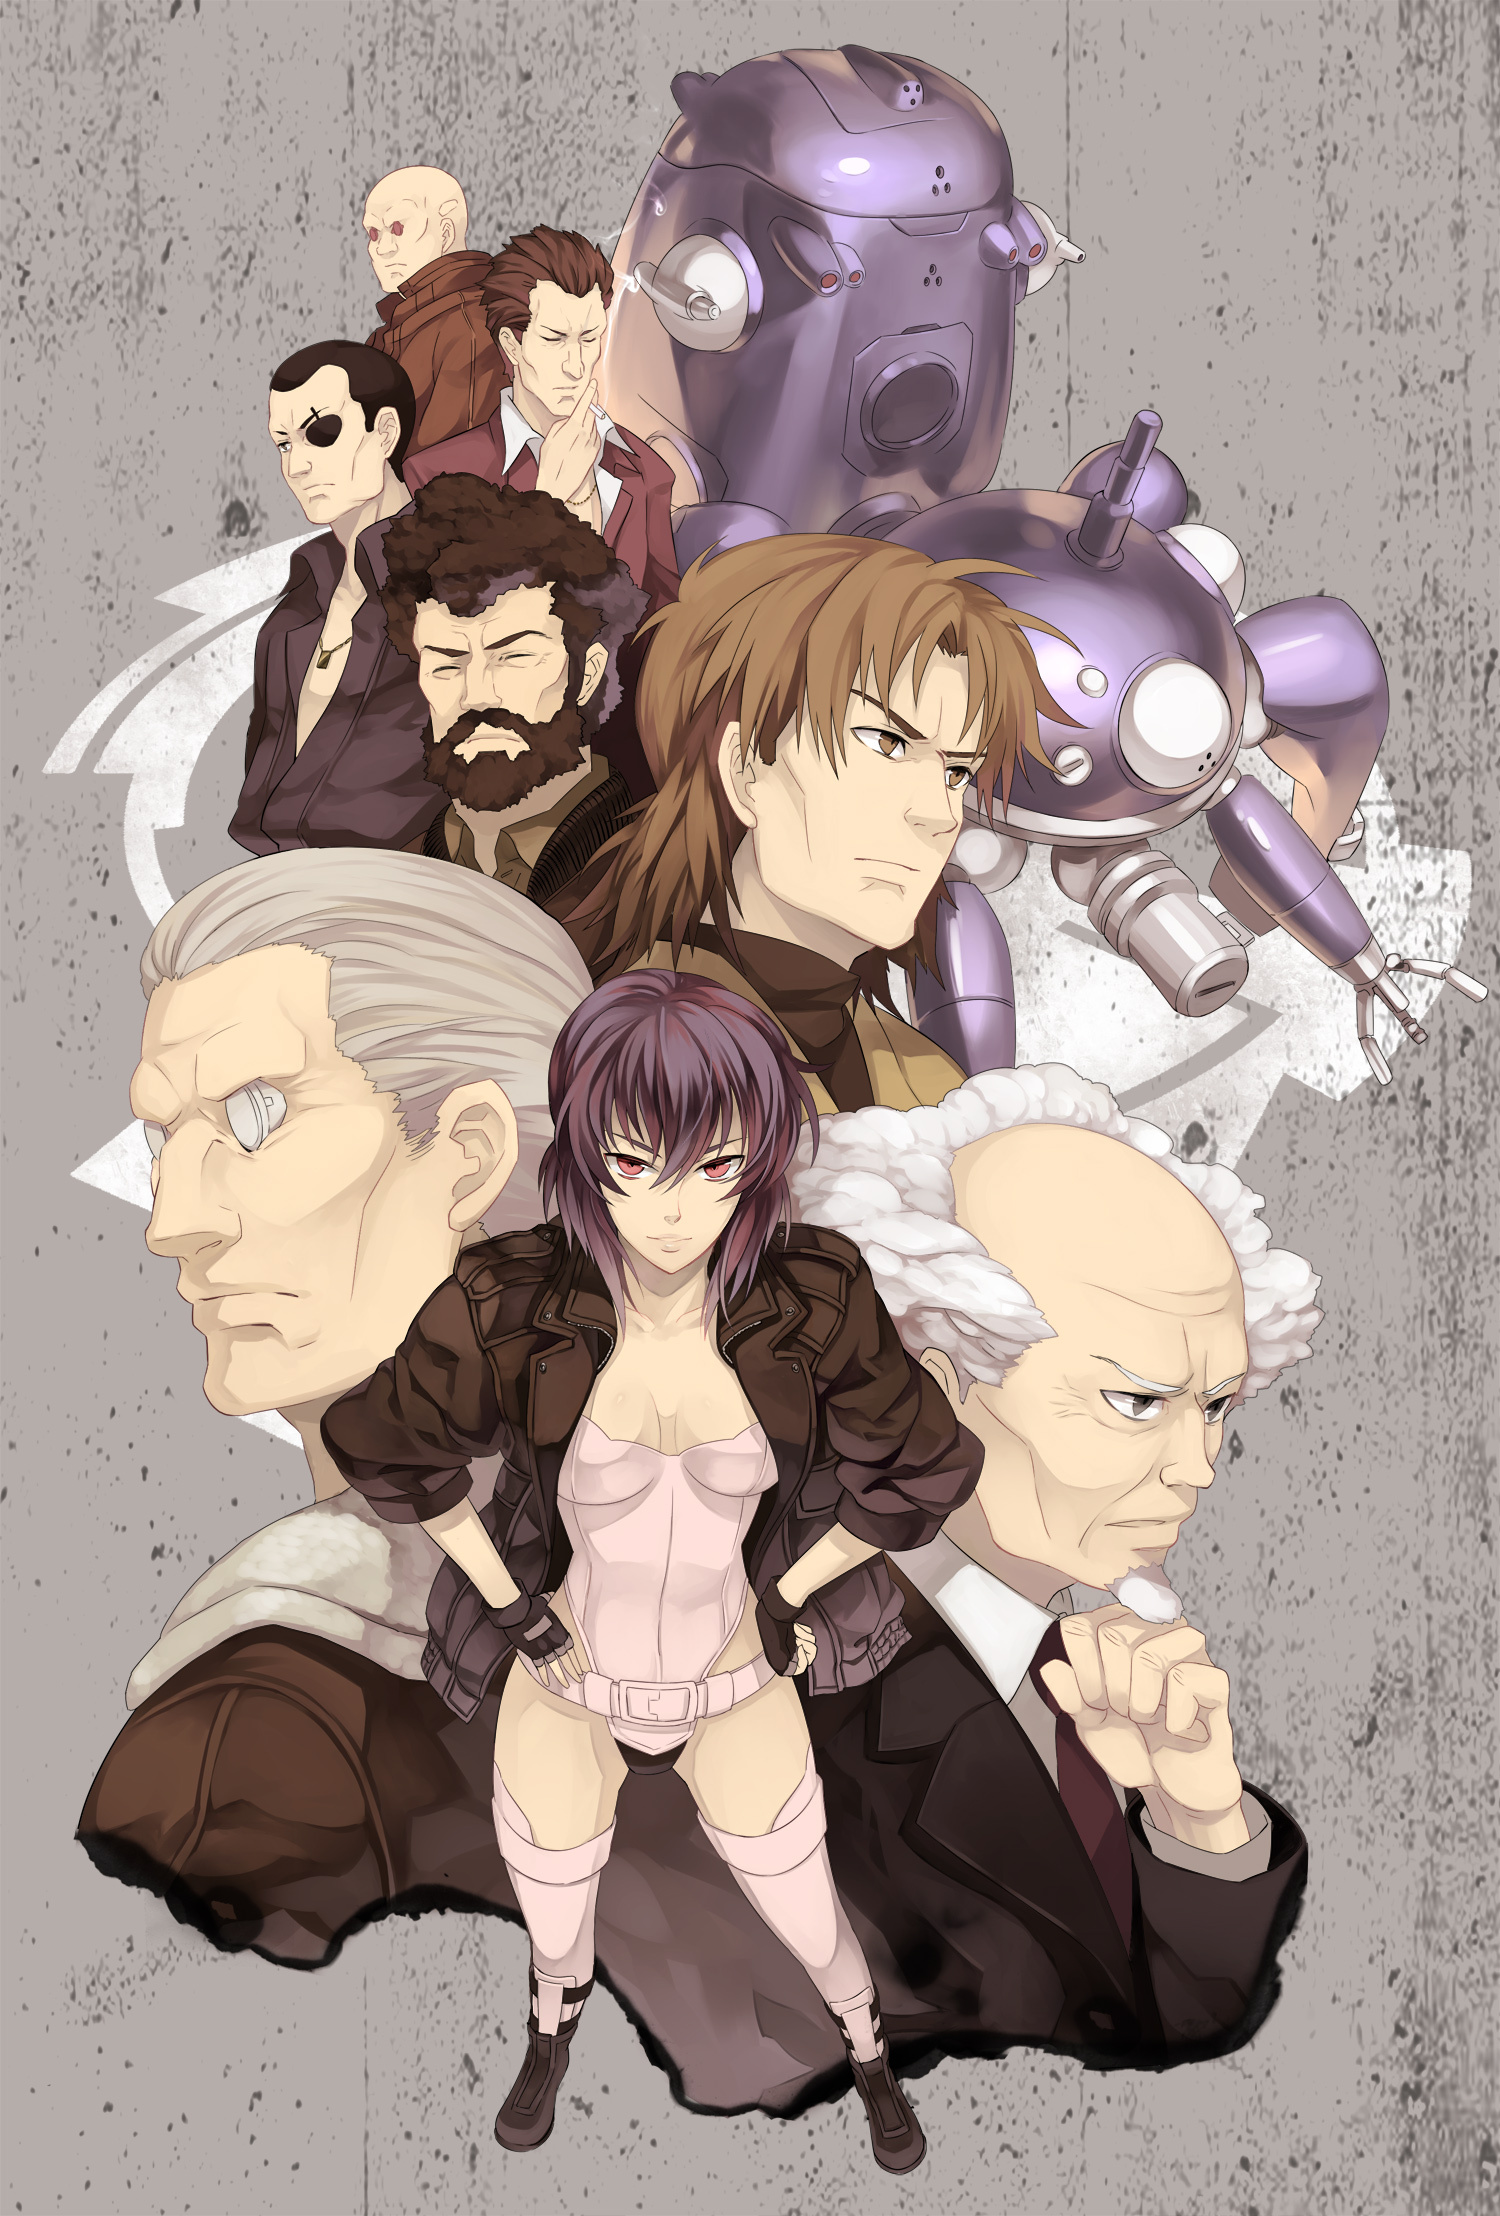 Batou Ghost In The Shell Koukaku Kidoutai Ghost In The Shell Zerochan Anime Image Board